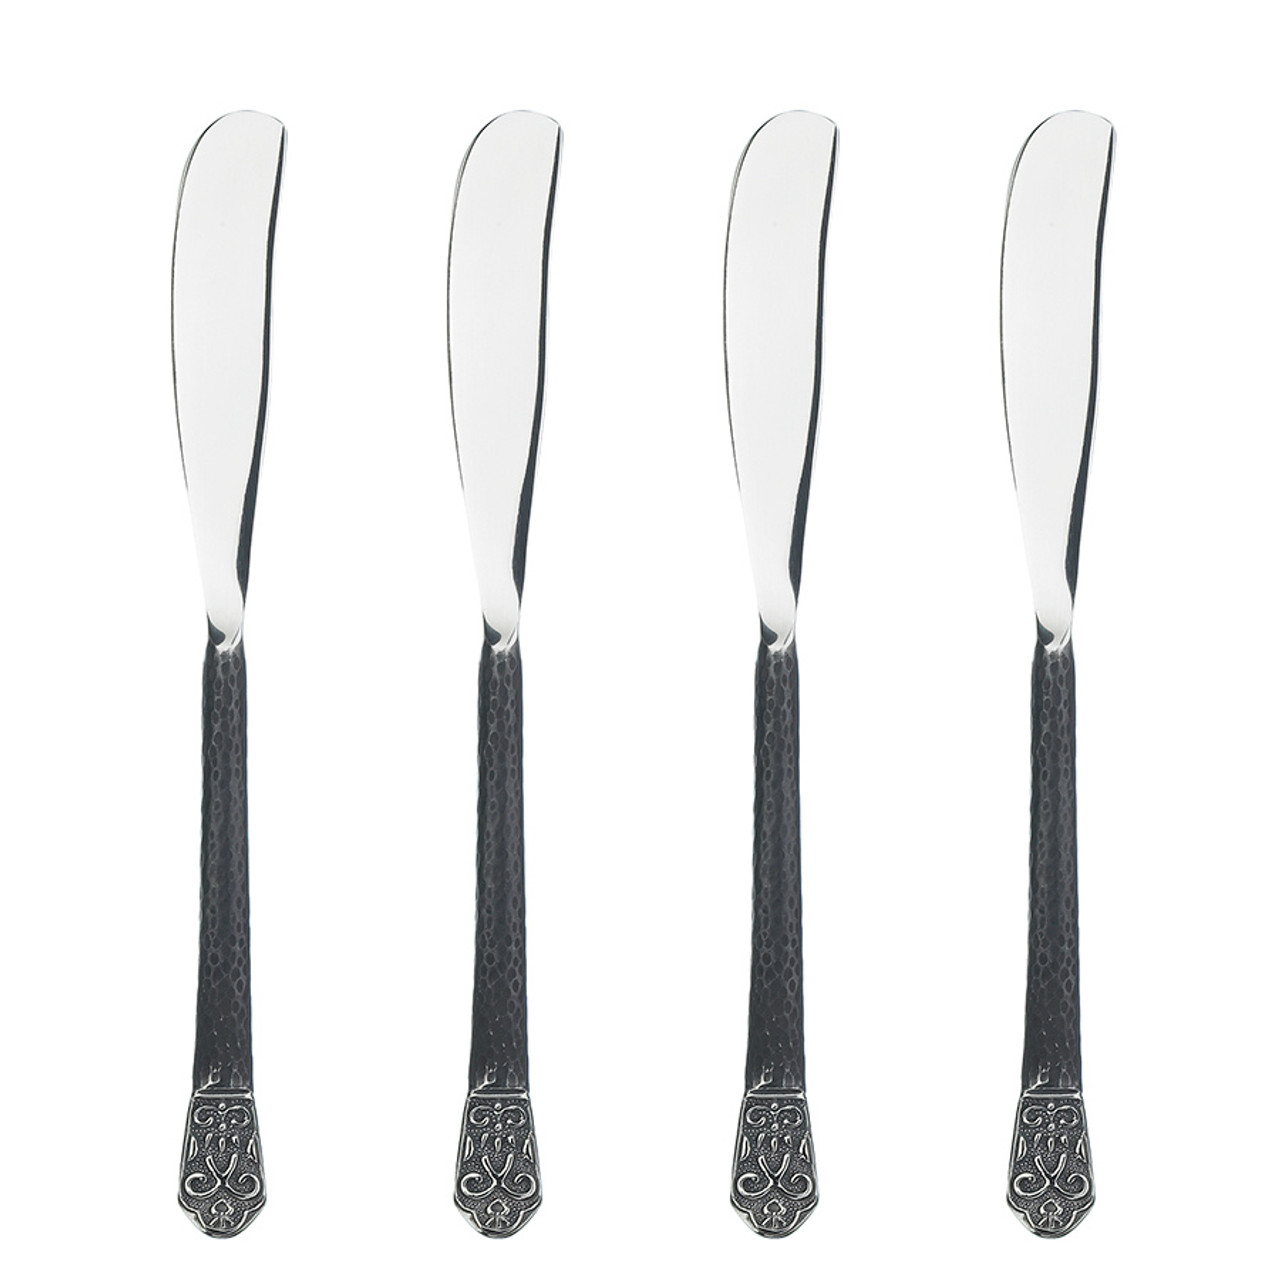 Avalon - 4 piece spreader set